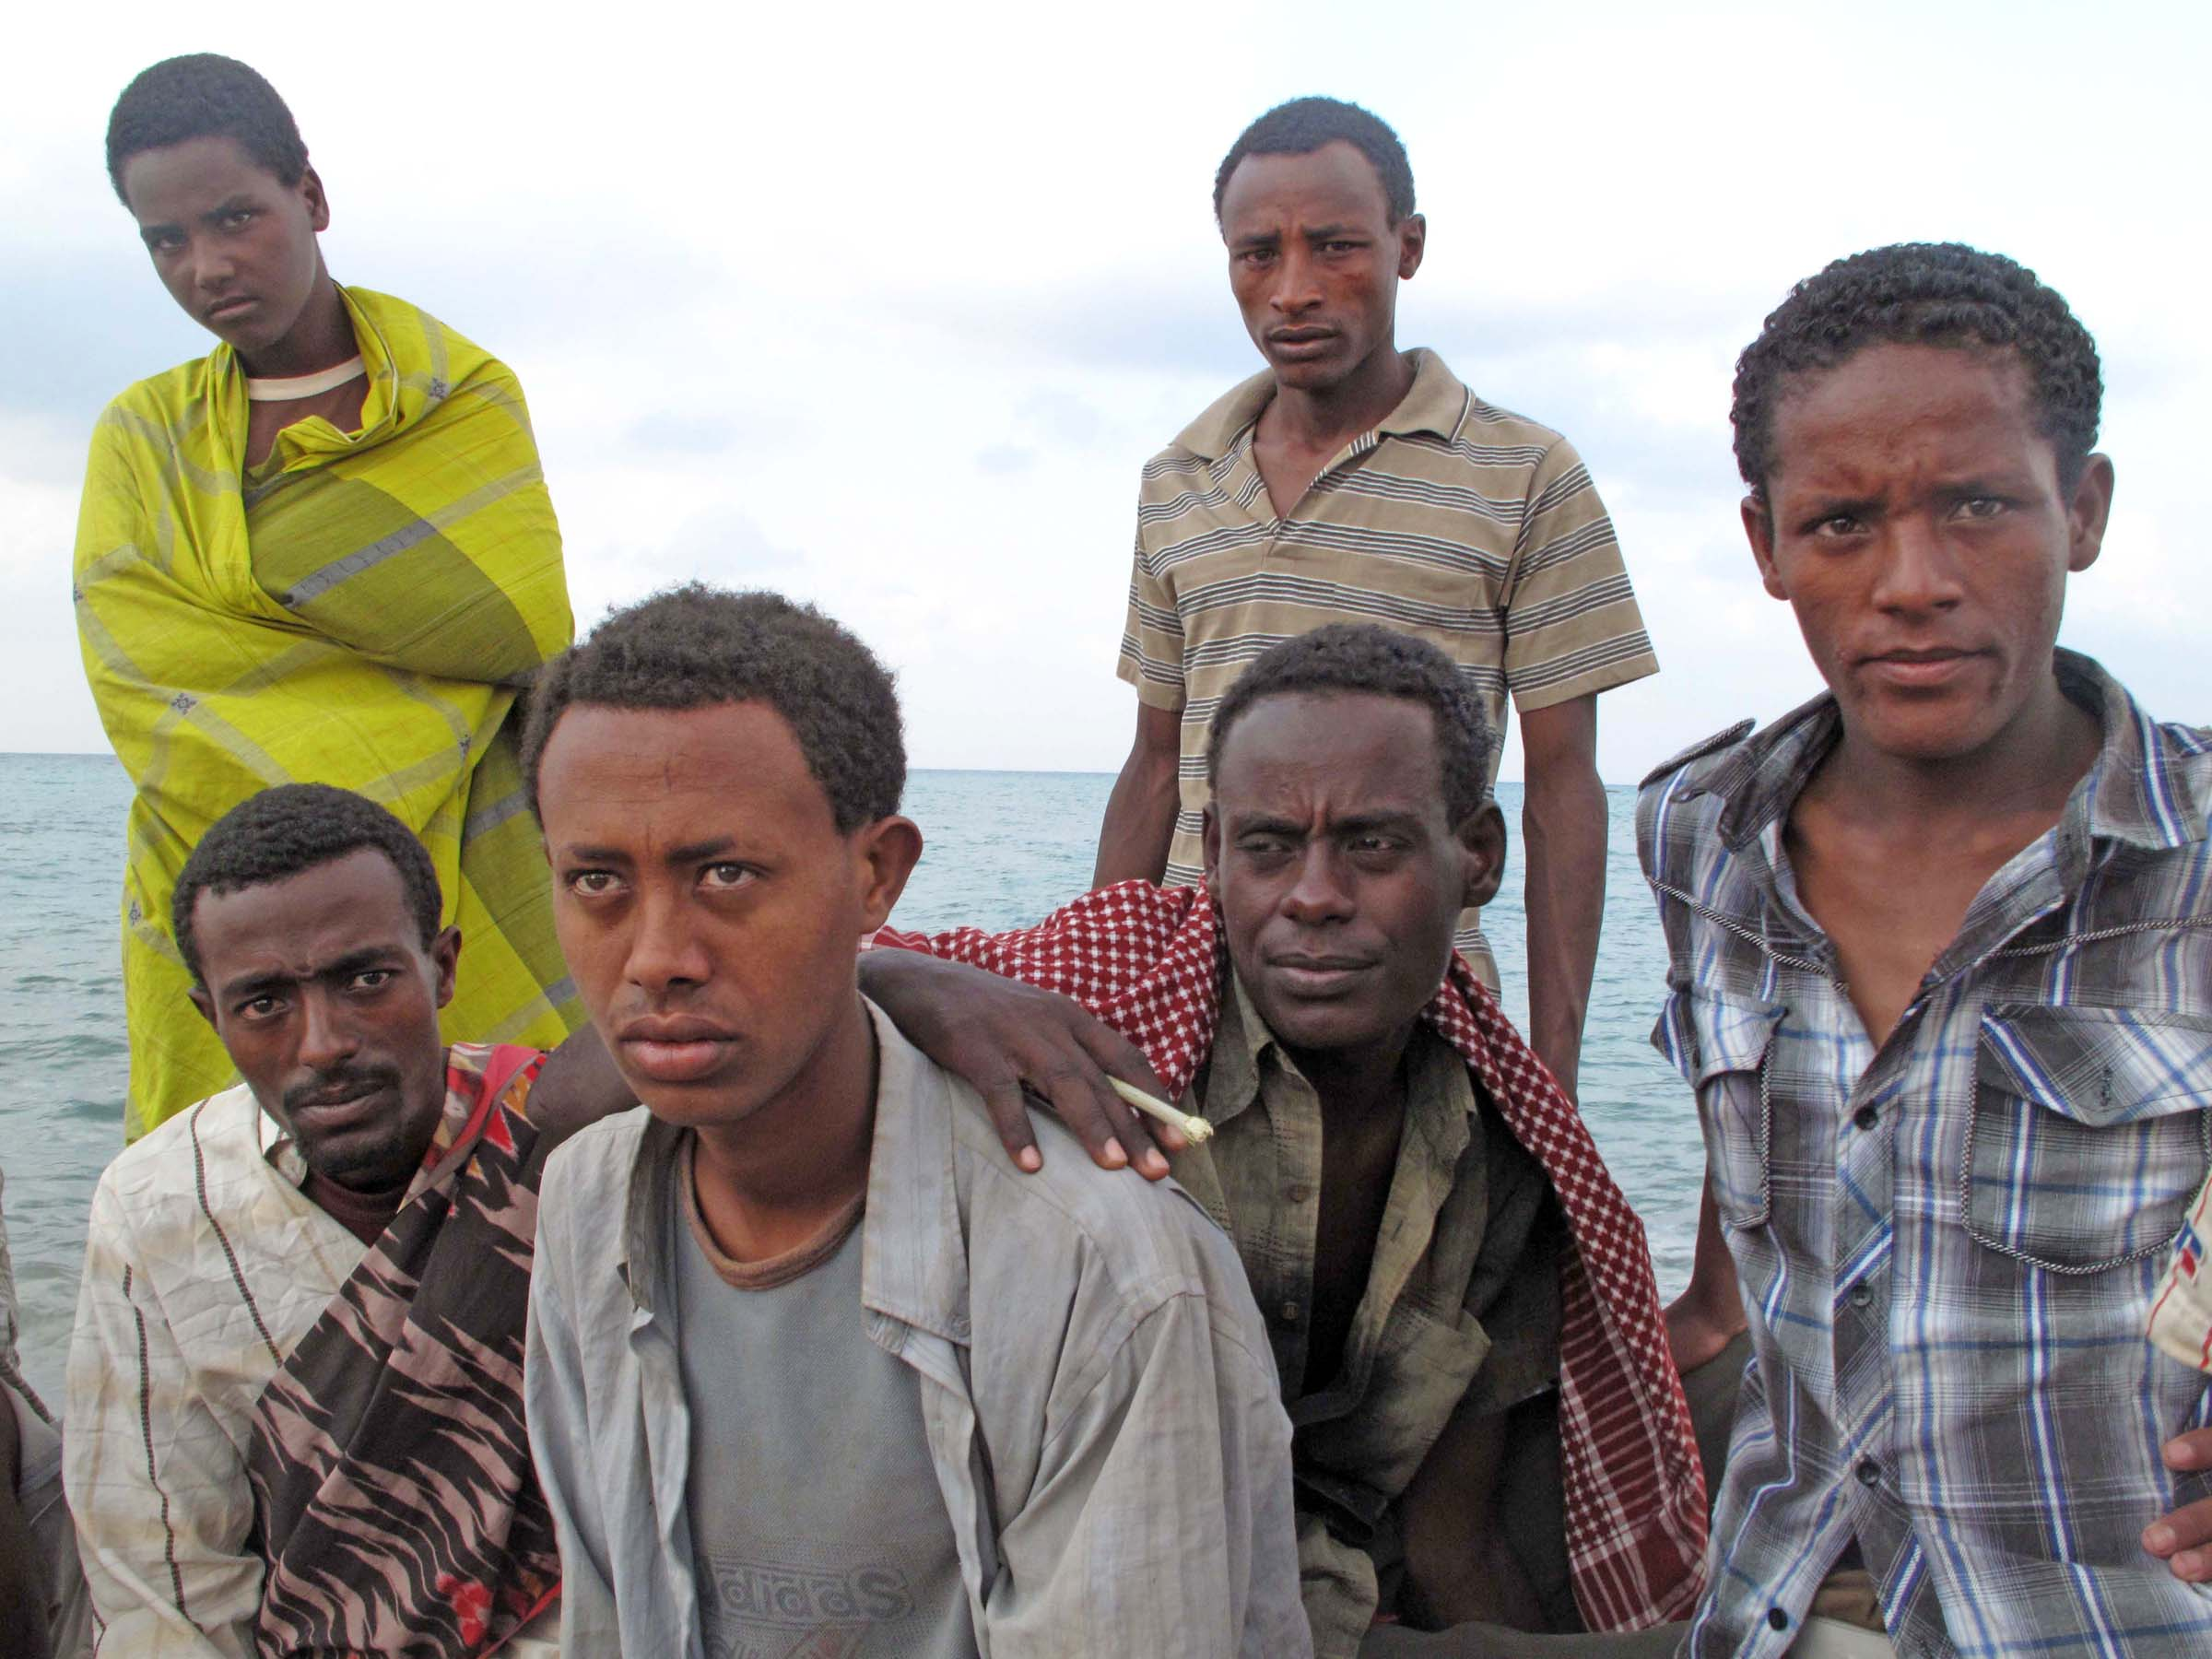 Some of the Ethiopian migrants gathered on Obock's pier have been stranded in the town for over a month after smugglers promised them passage to Yemen and then disappeared with their money